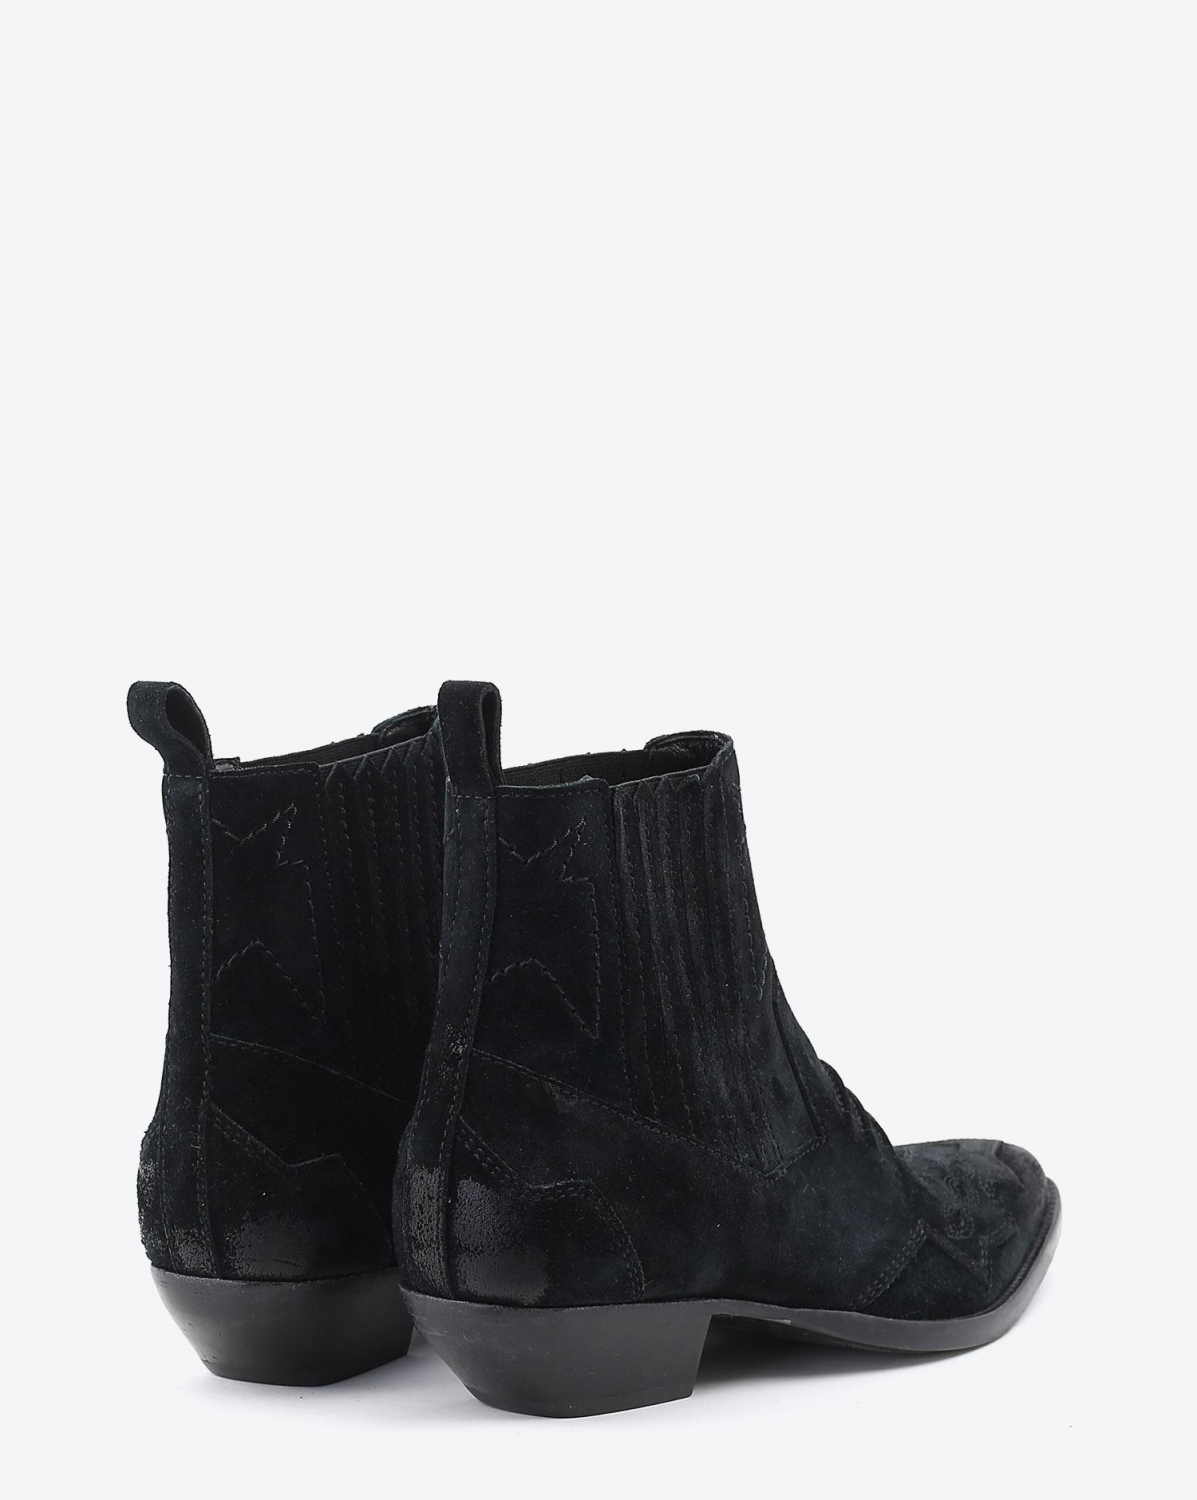 Roseanna Chaussures Boots TUCSON - Noir Suede